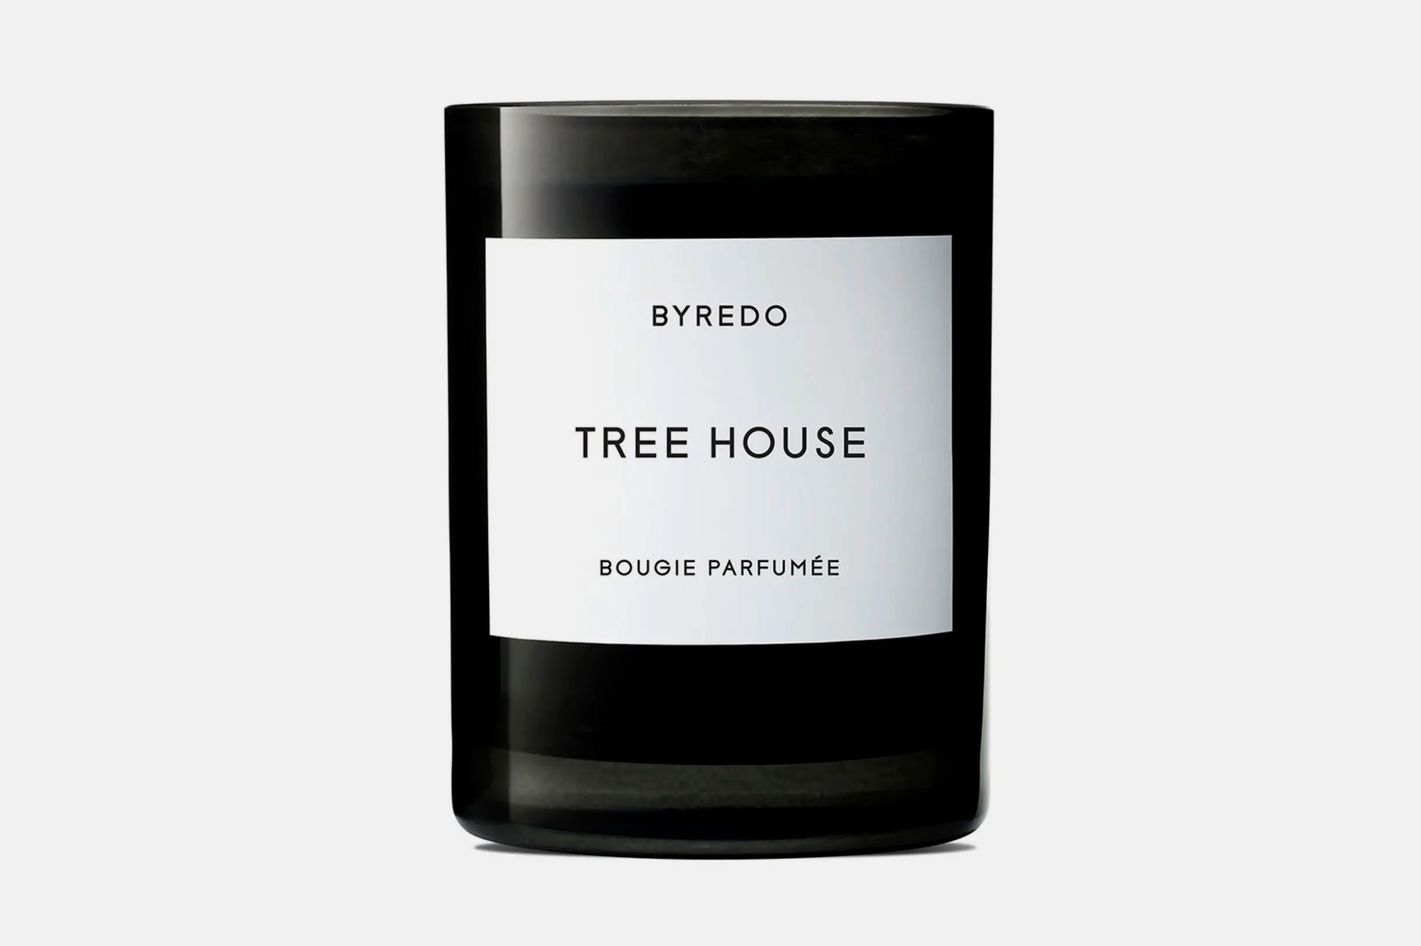 Byredo Tree House Bougie Parfumee Scented Candle